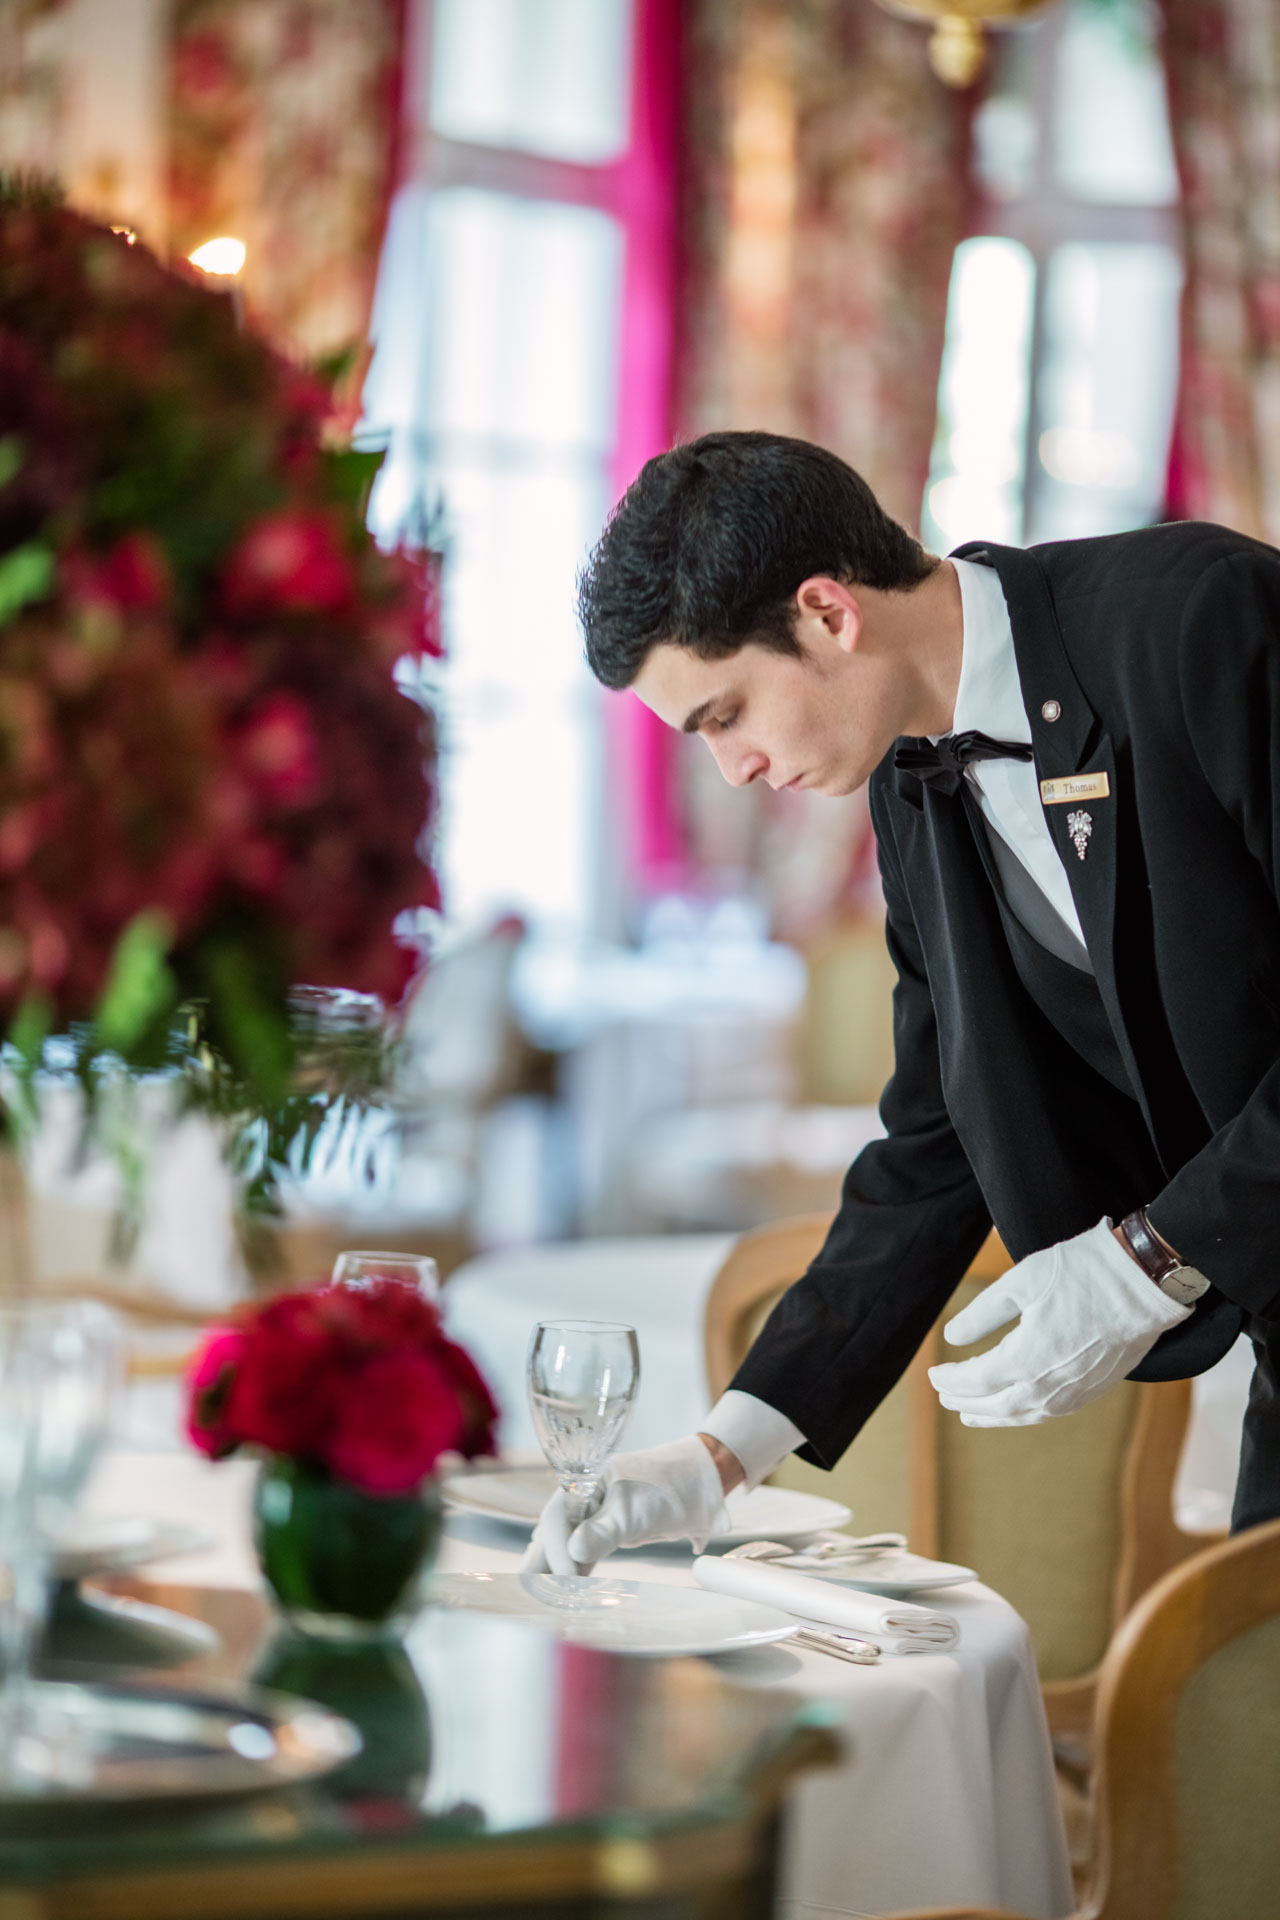 Waiter at Hotel Le Bristol Paris